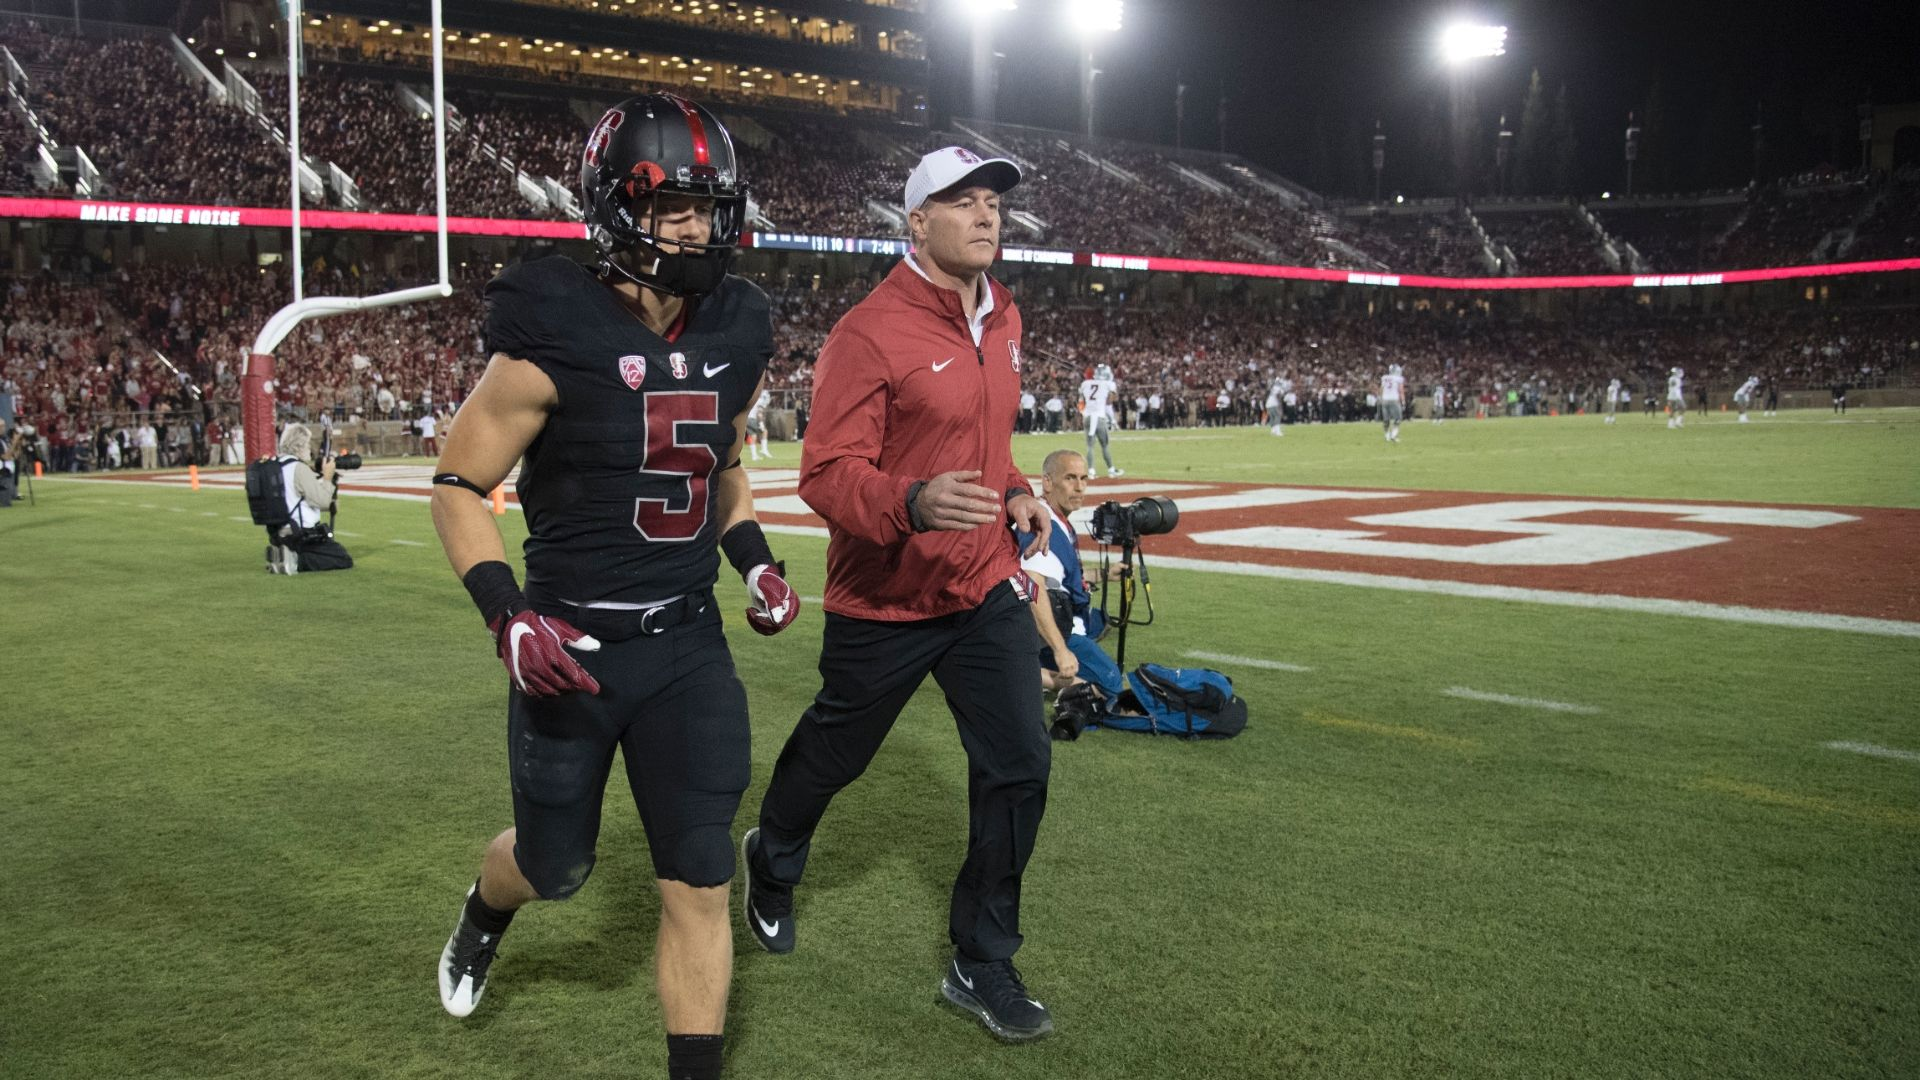 McCaffrey 'banged up' in Stanford's loss